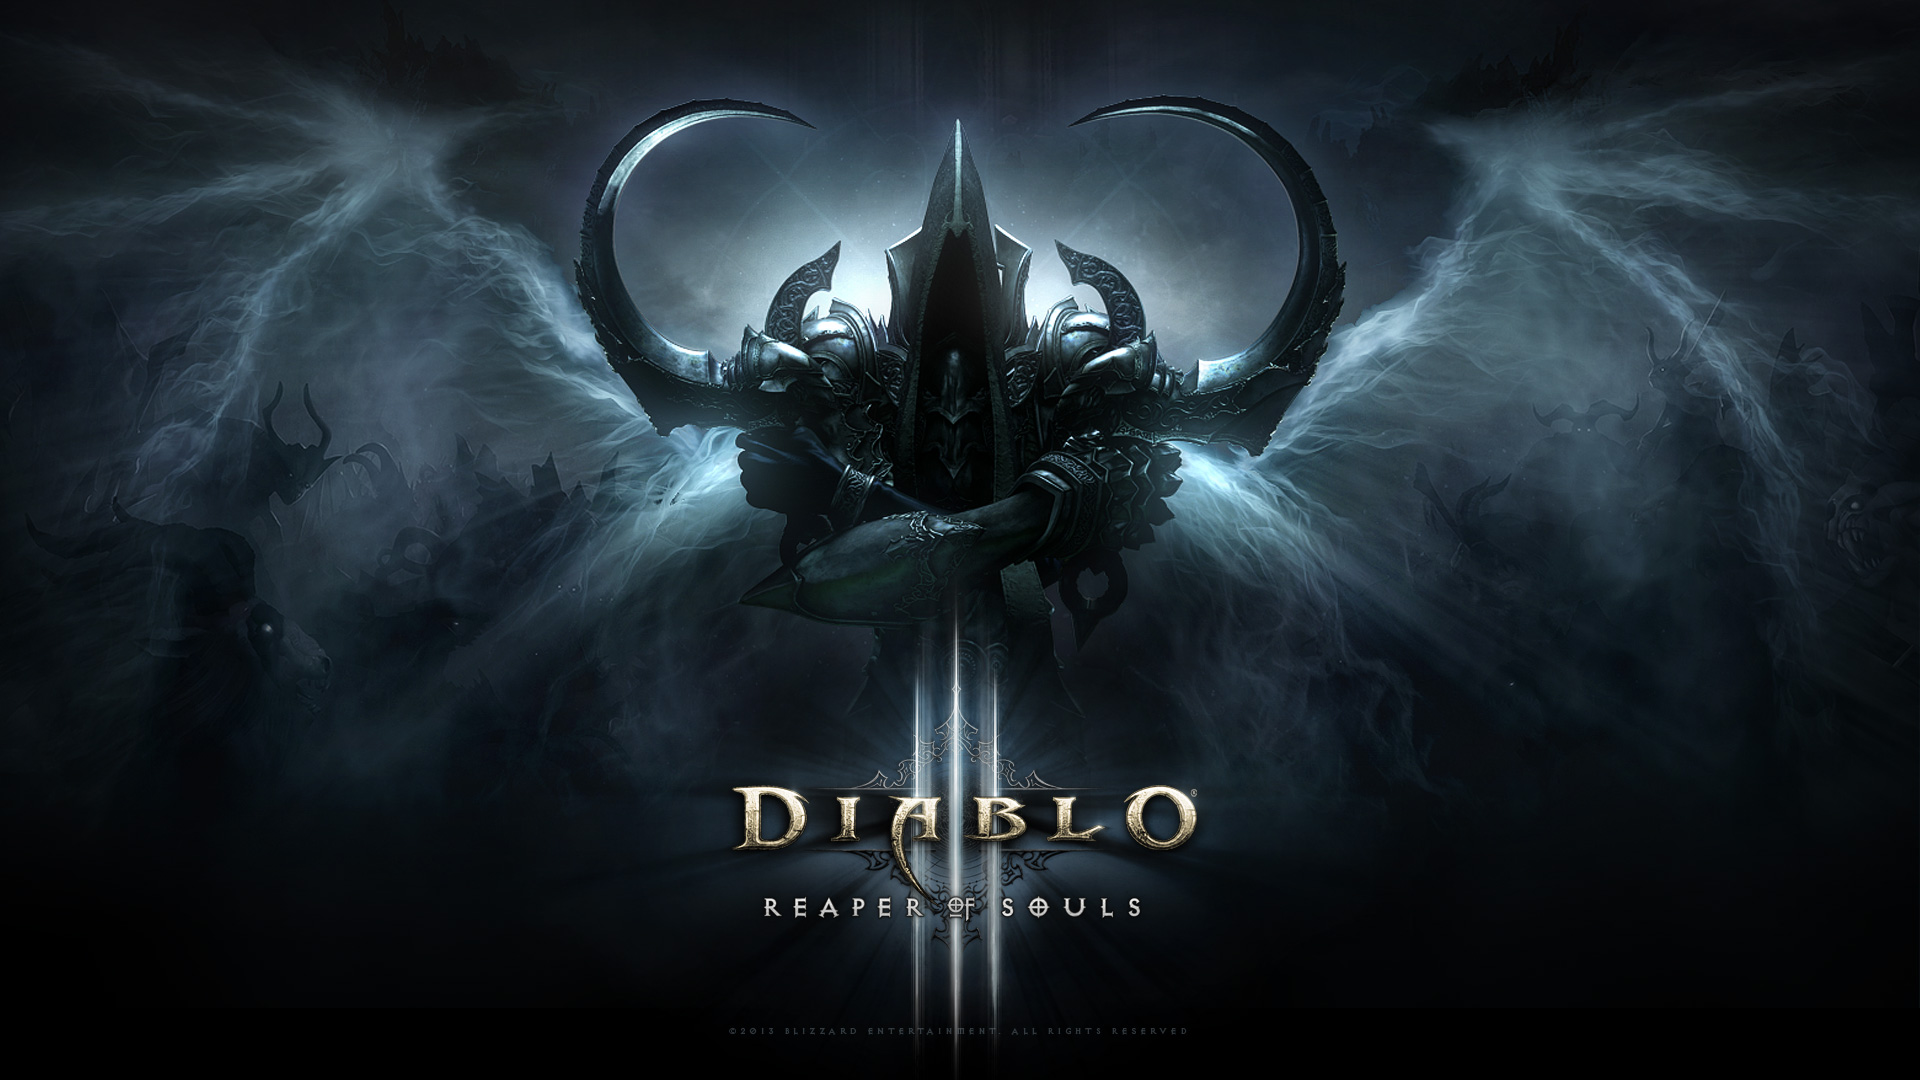 Diablo-3-Reaper-of-Souls-Wallpaper